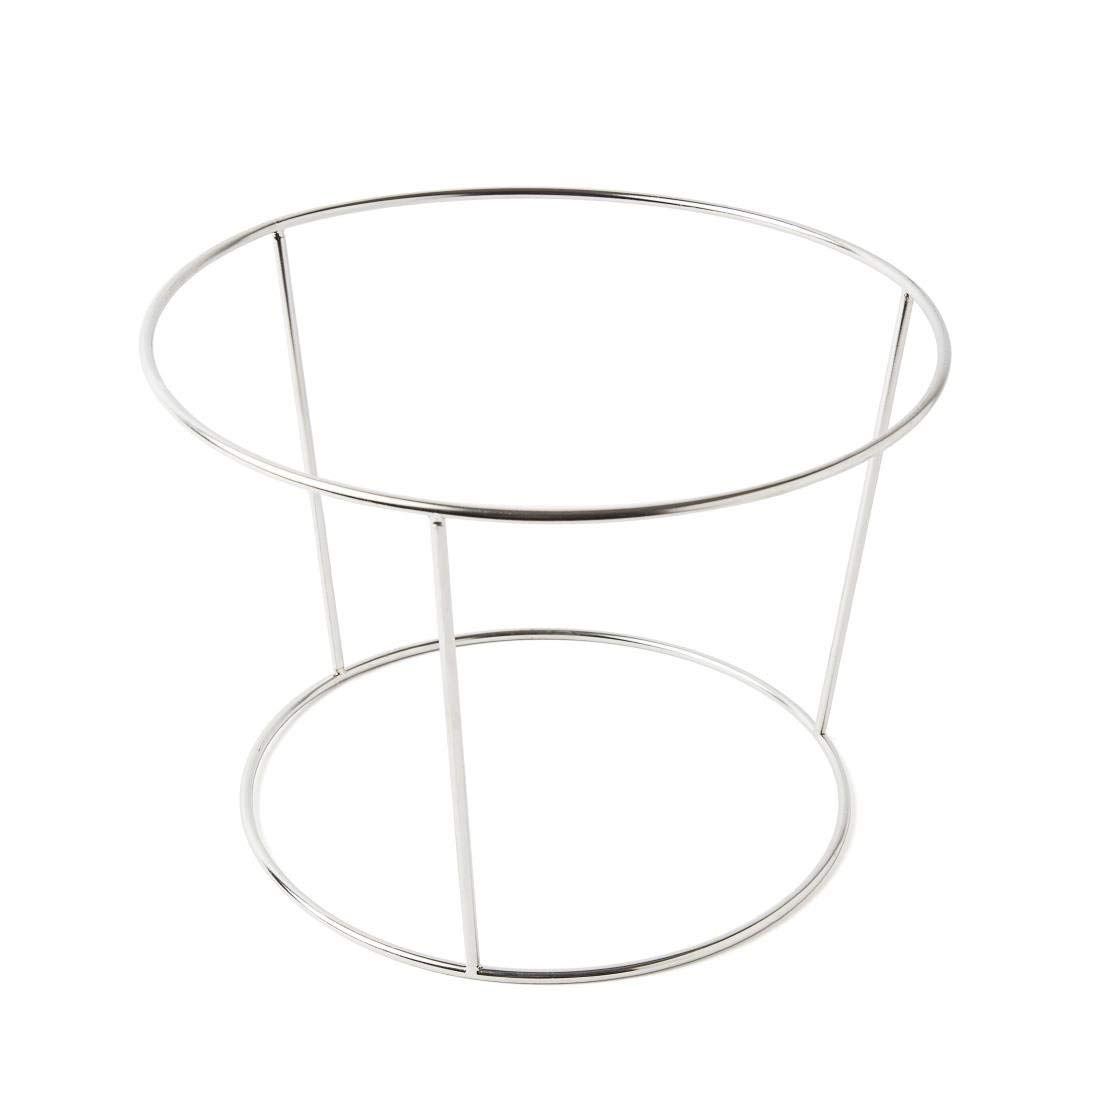 Stalwart Seafood Platter Stand Only Stainless Steel Rack Tray Organiser Display